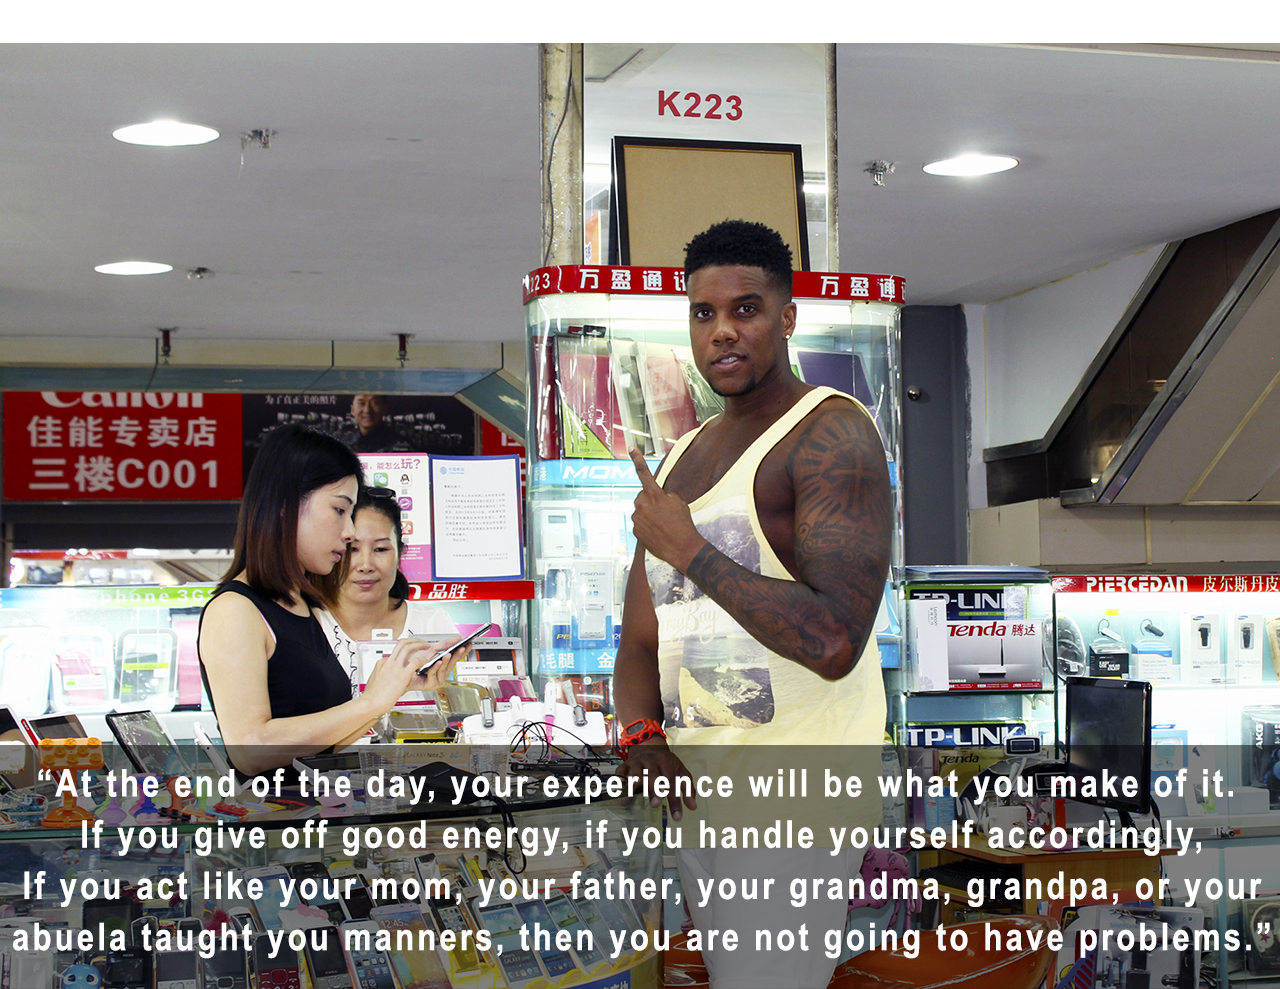 [Image] Words from a black man who decided to move to china